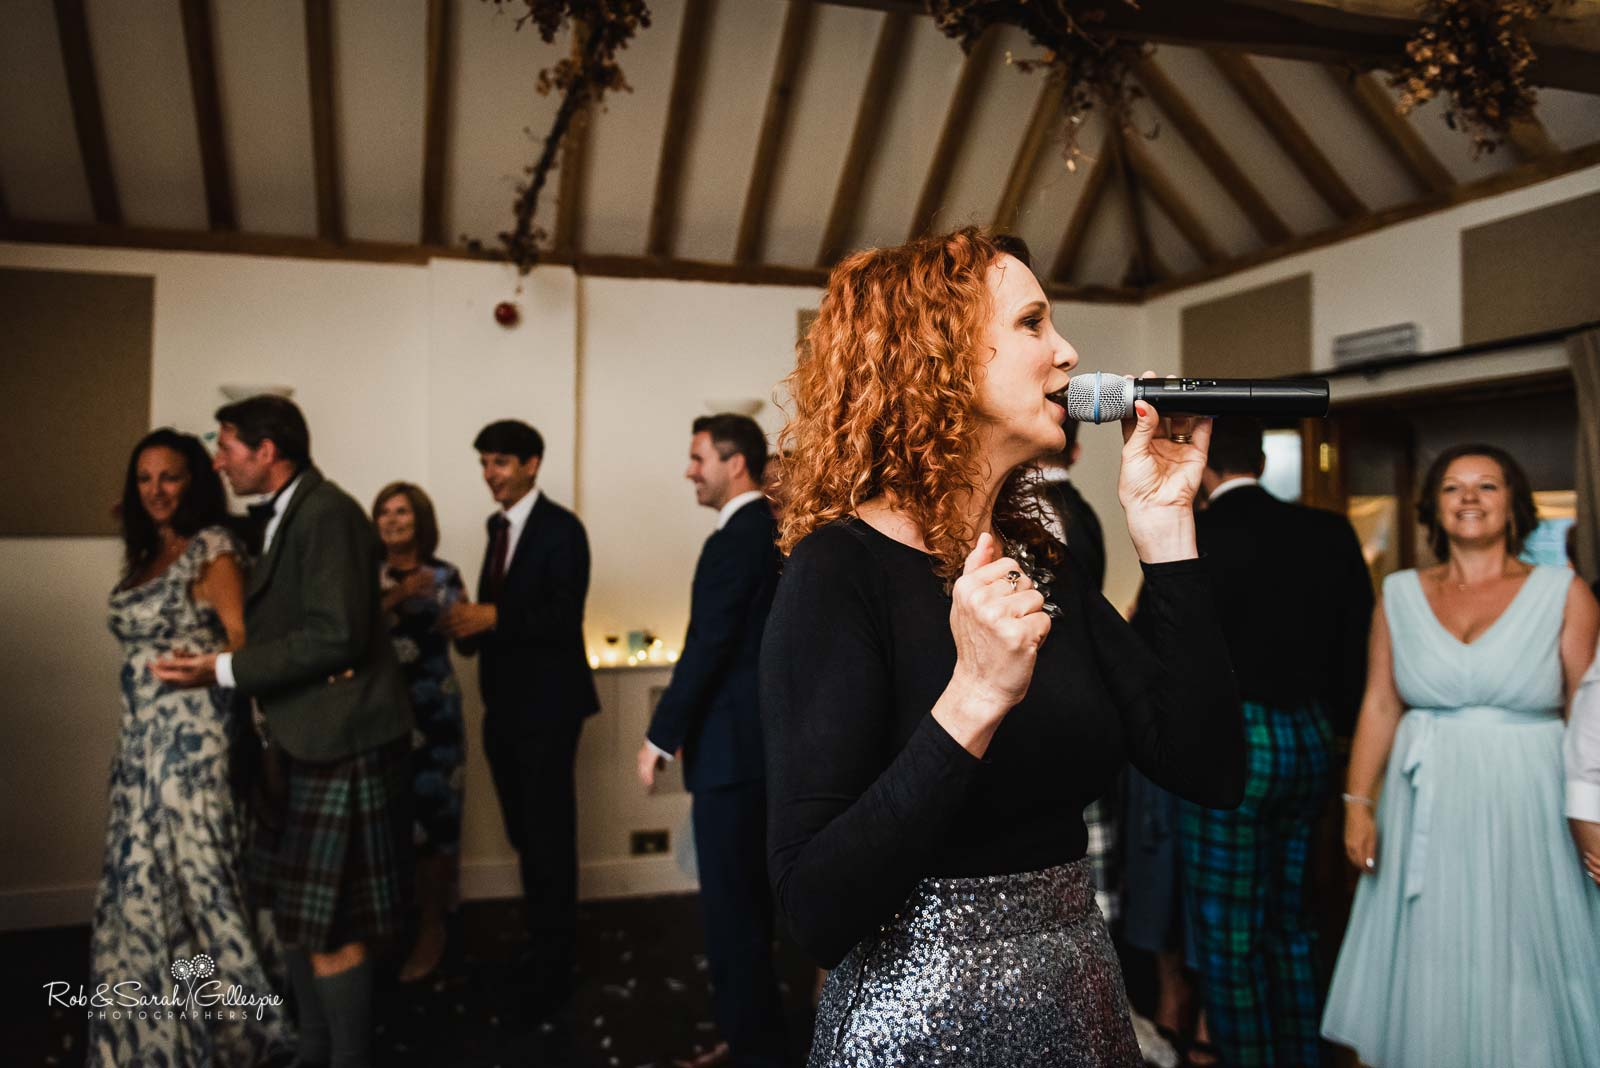 Ceilidh at Wethele Manor wedding